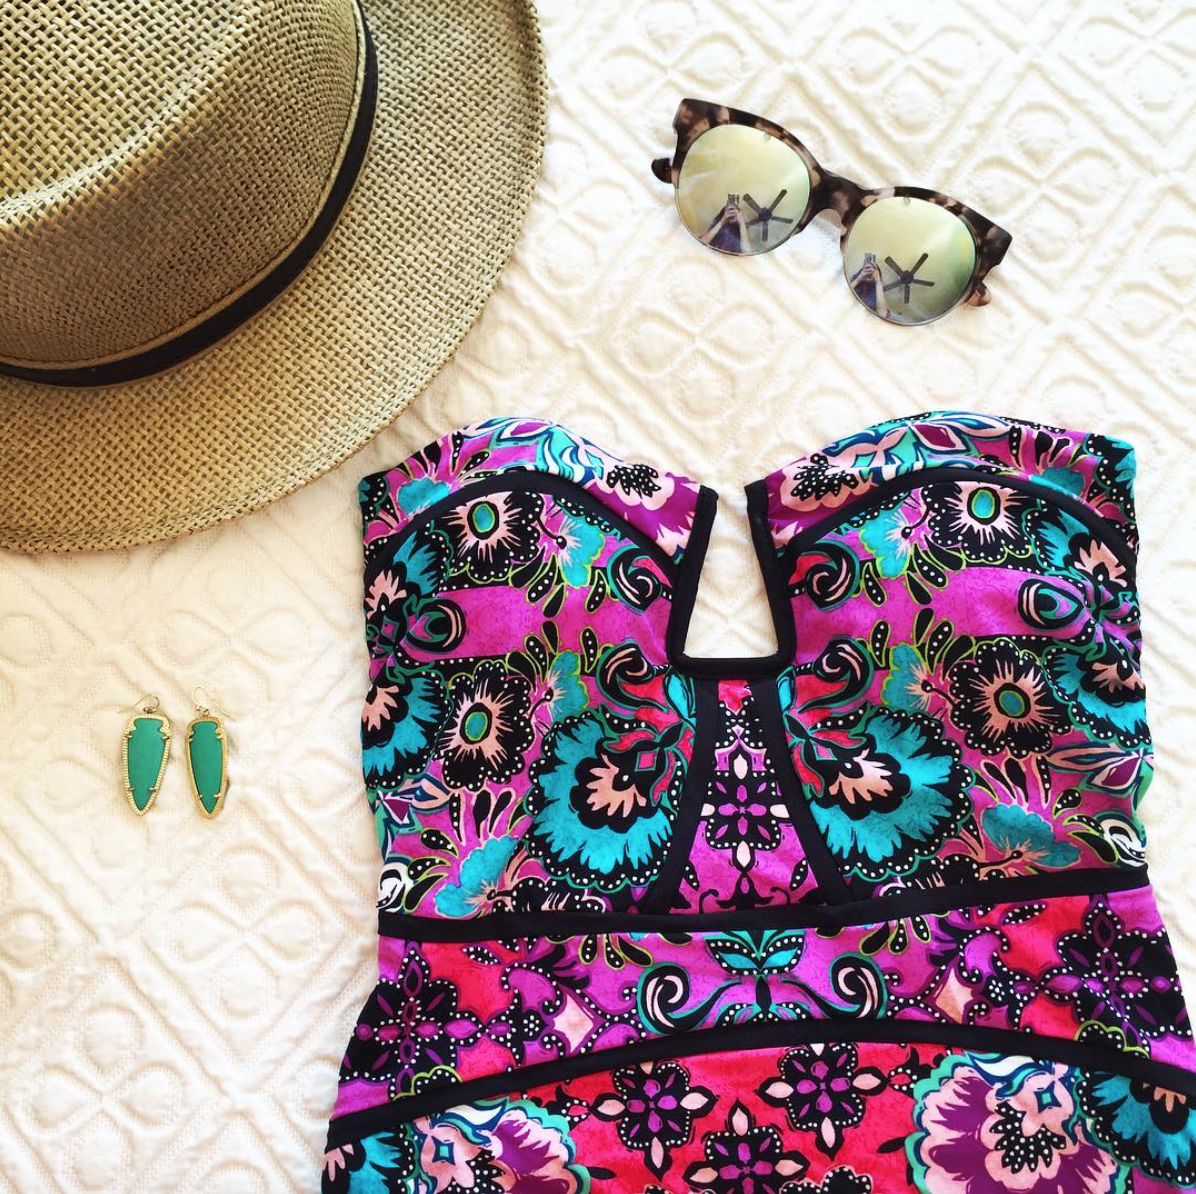 Bathing Suit:  Nanette Lepore Bali Batik One-piece Bathing Suit    Earrings:  Kendra Scott Skylar Earrings   Sunglasses: Cutler and Gross- pink color sold out, black color available  here